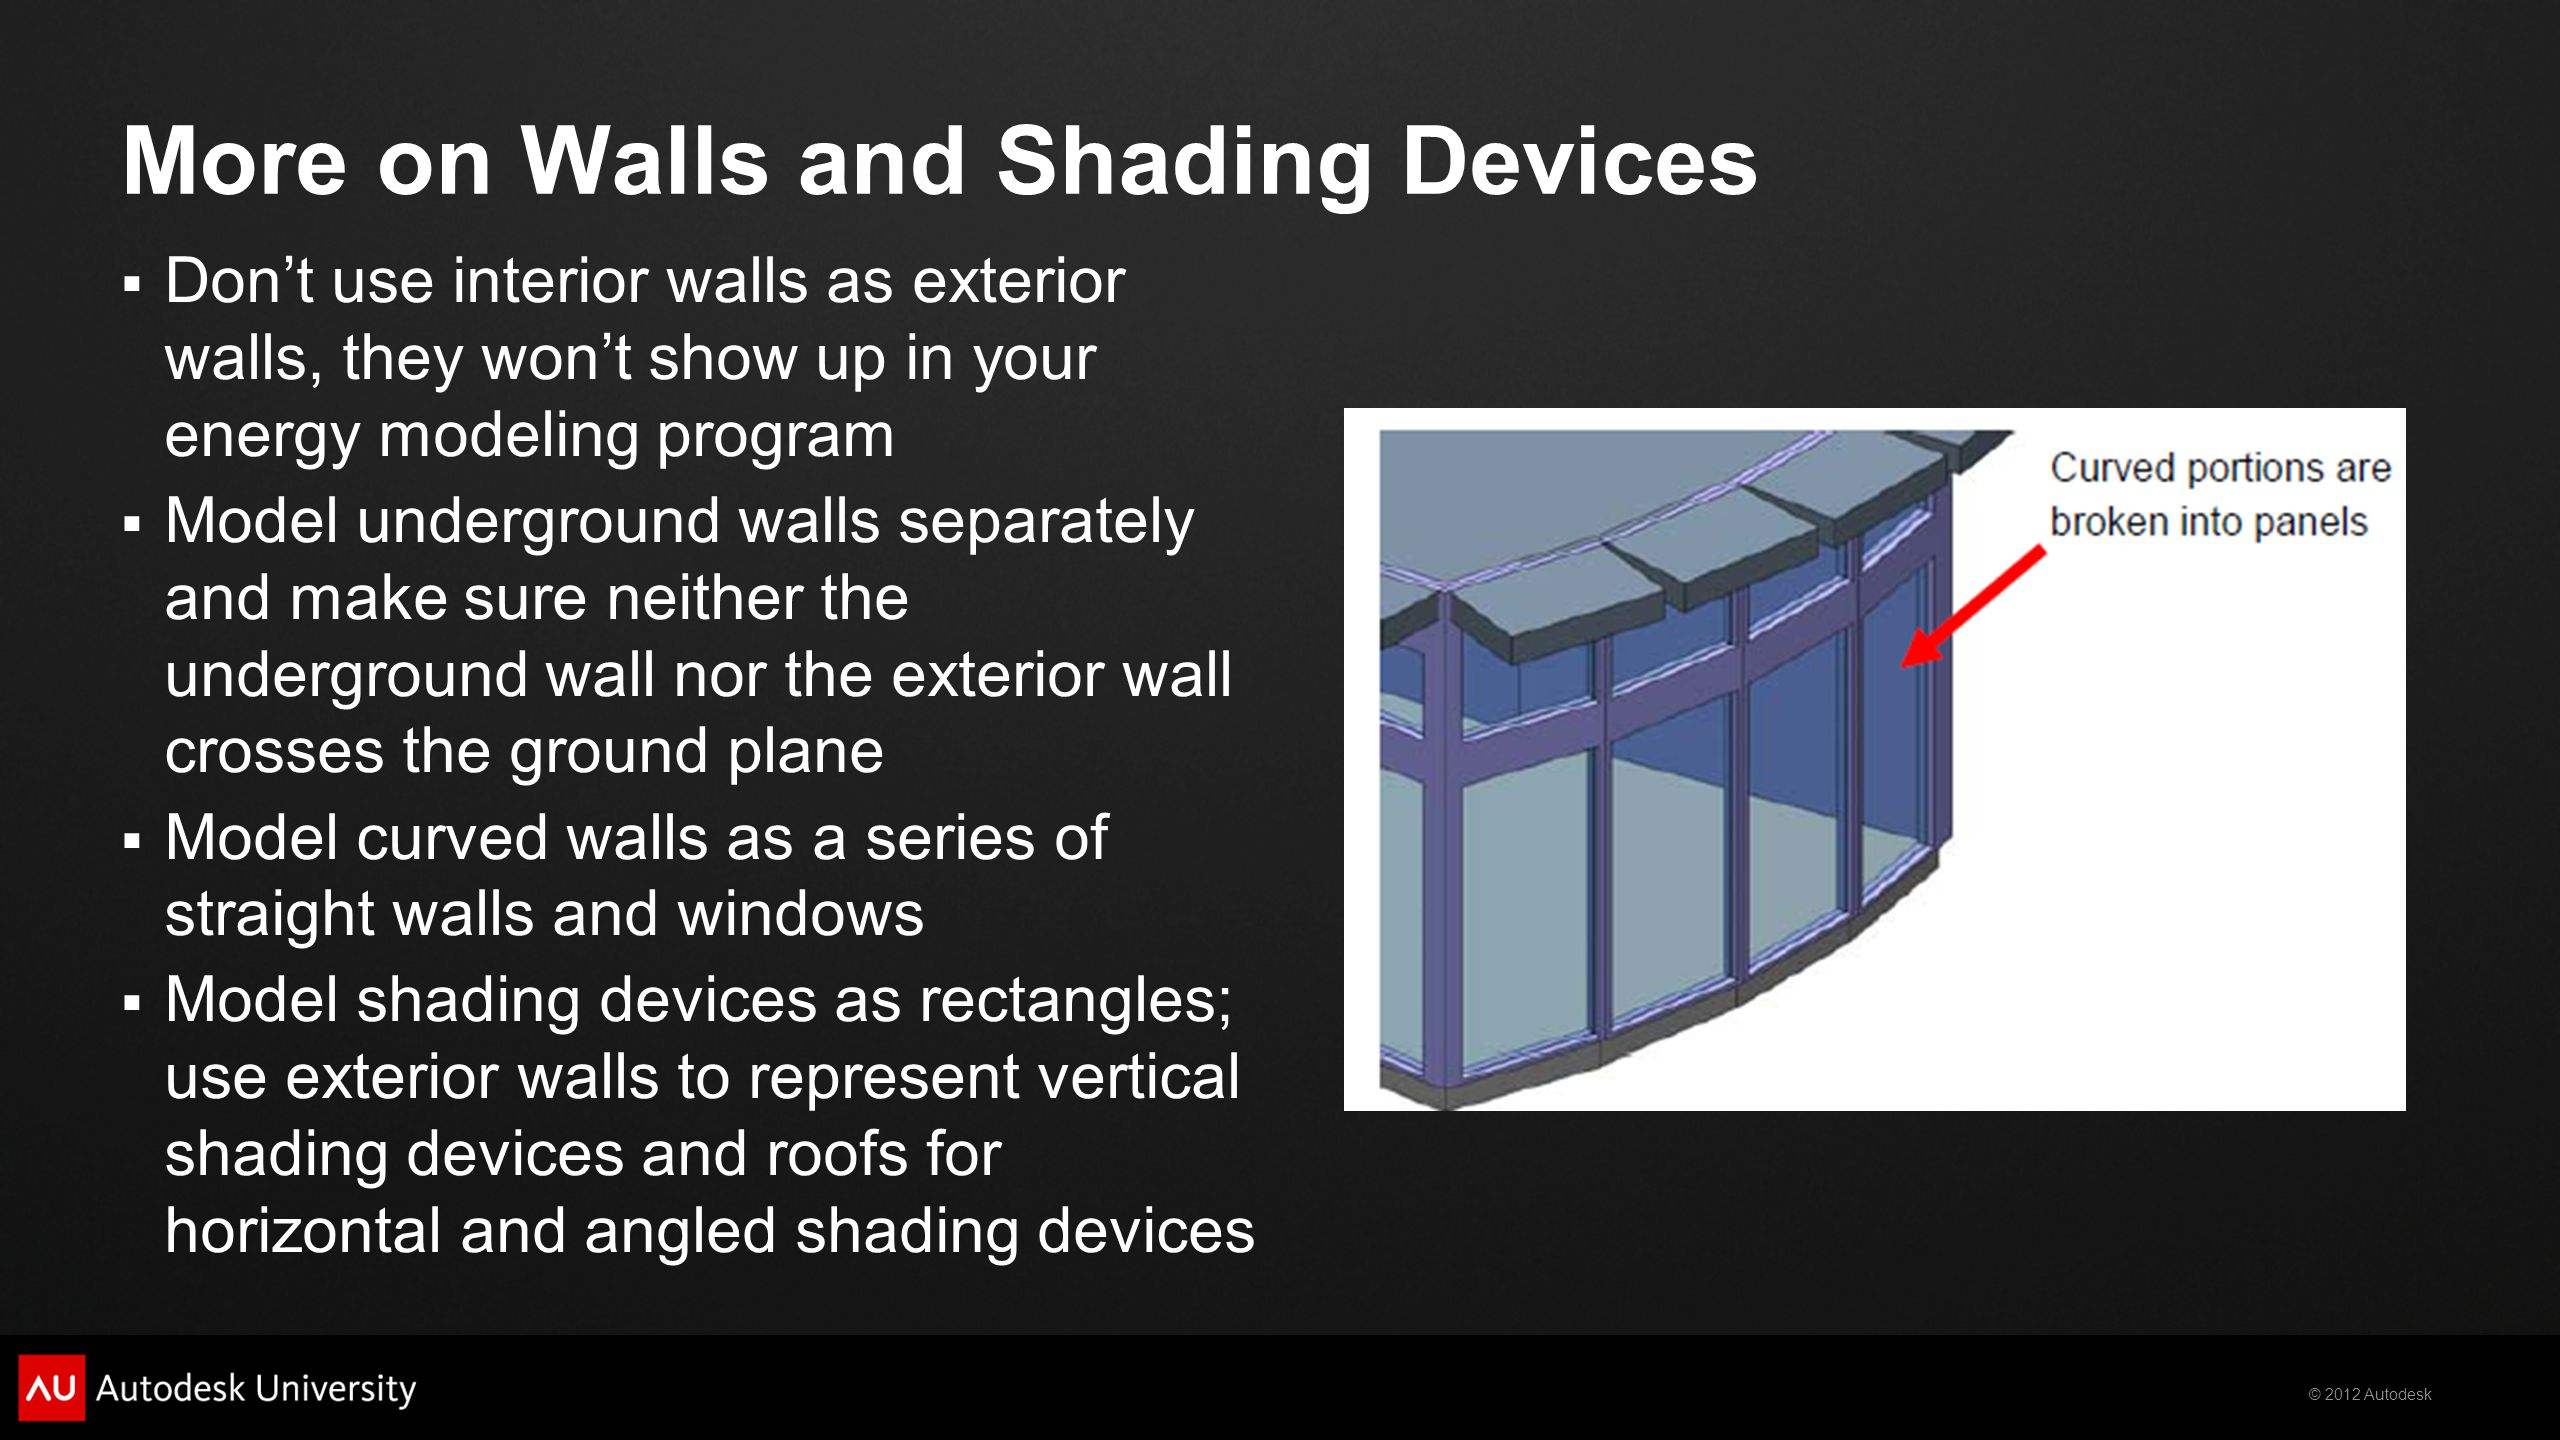 More on Walls and Shading Devices